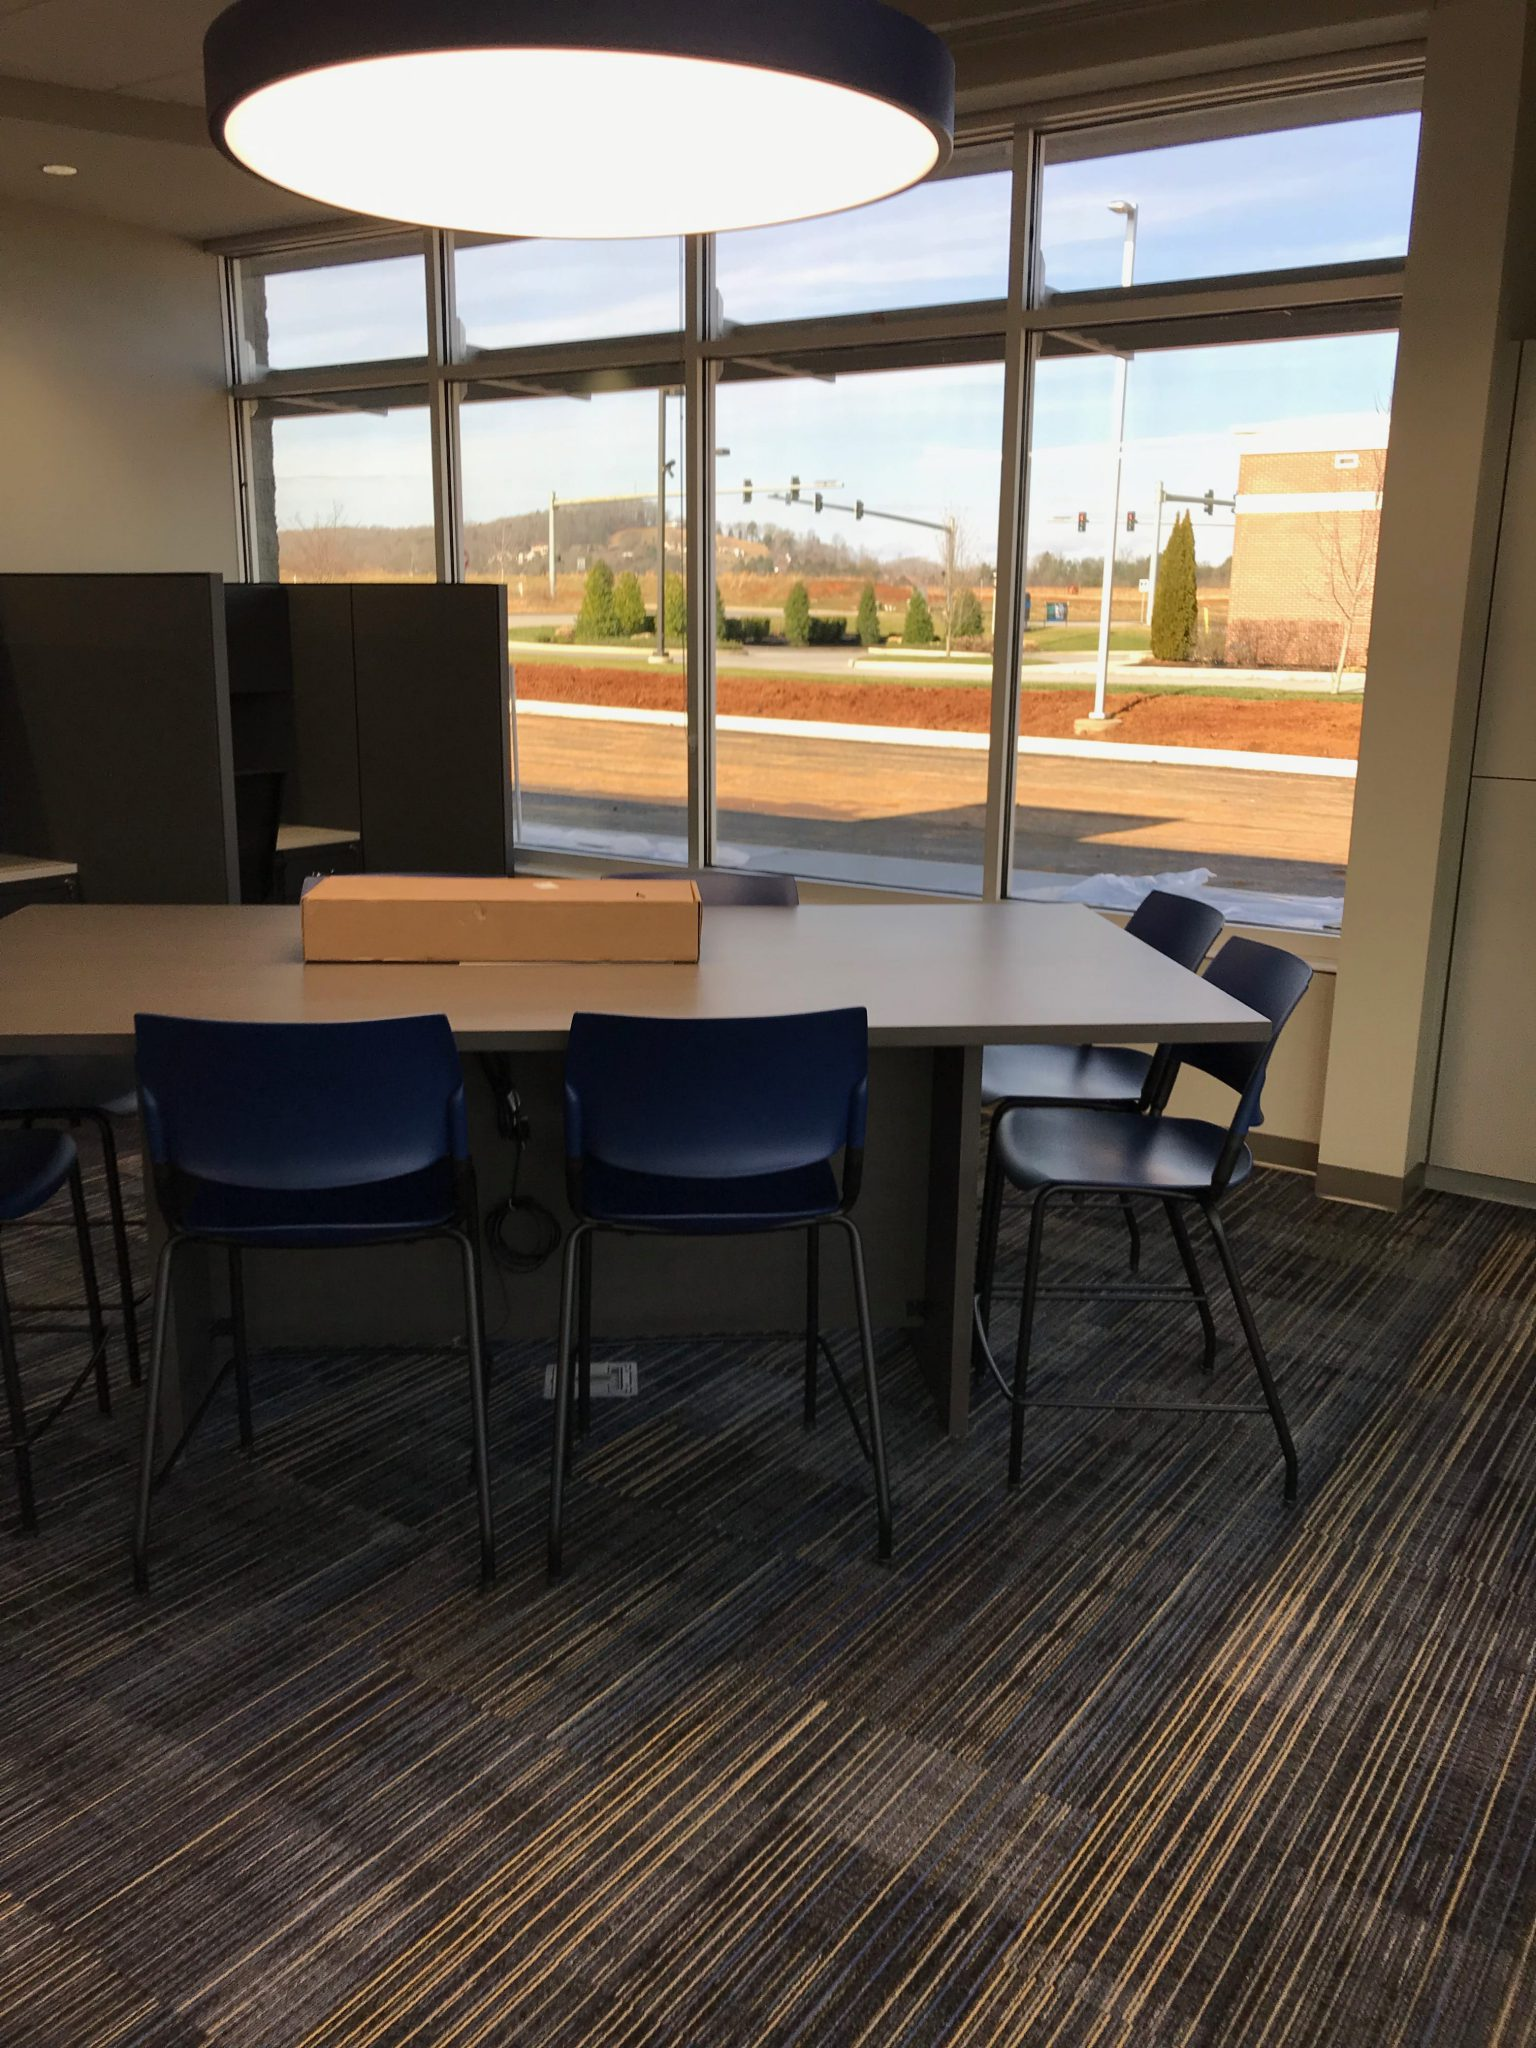 Construction Clean Conference Table With Large Window Min Abseco